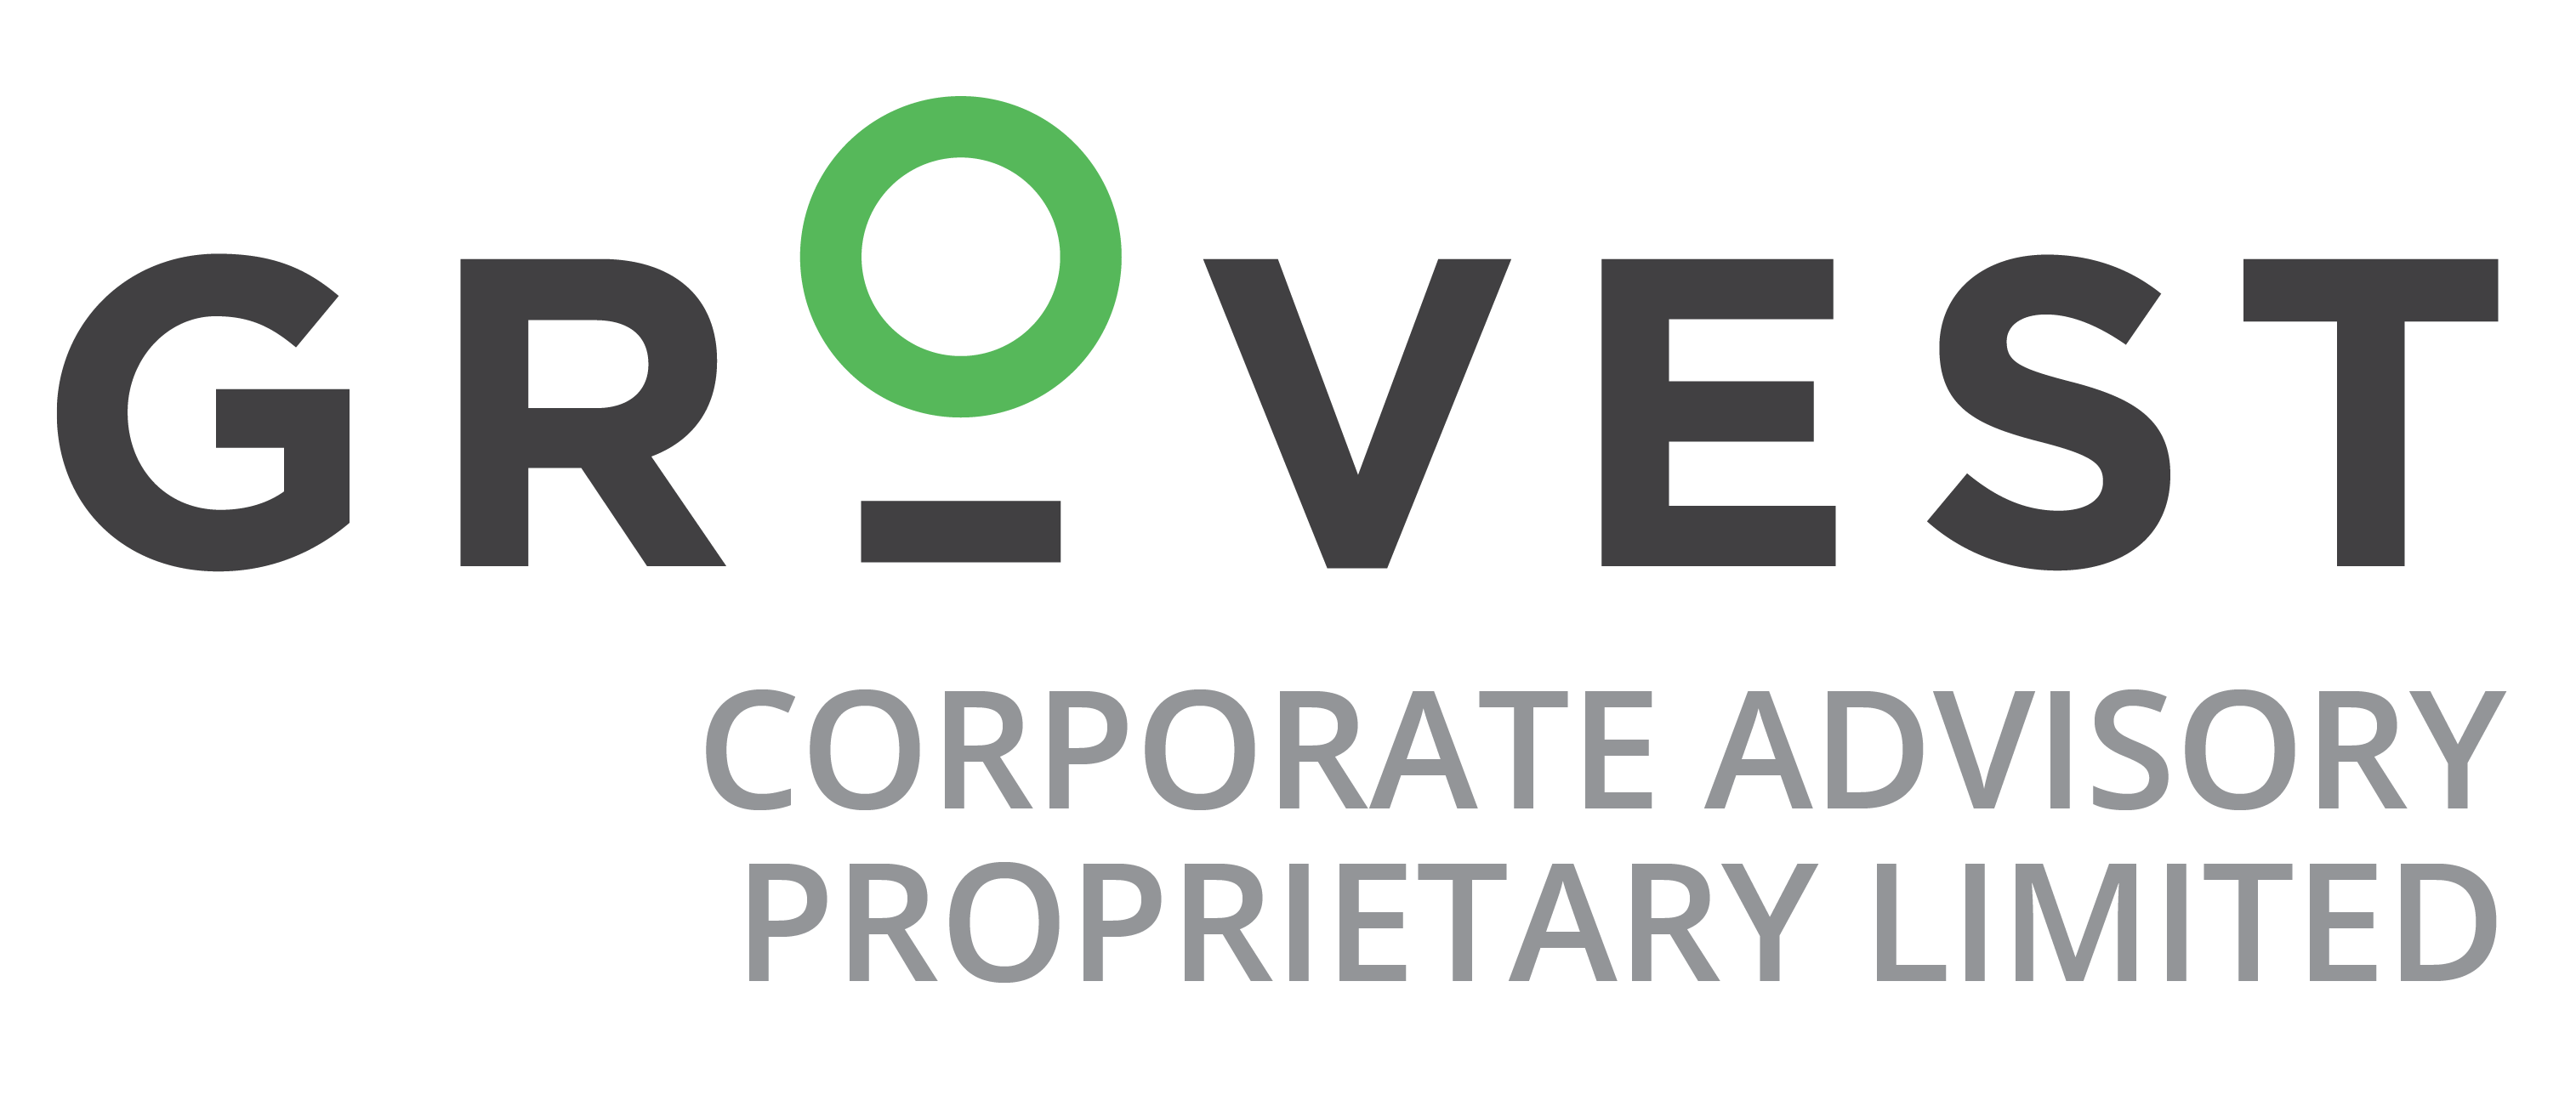 Grovest Corporate Advisory